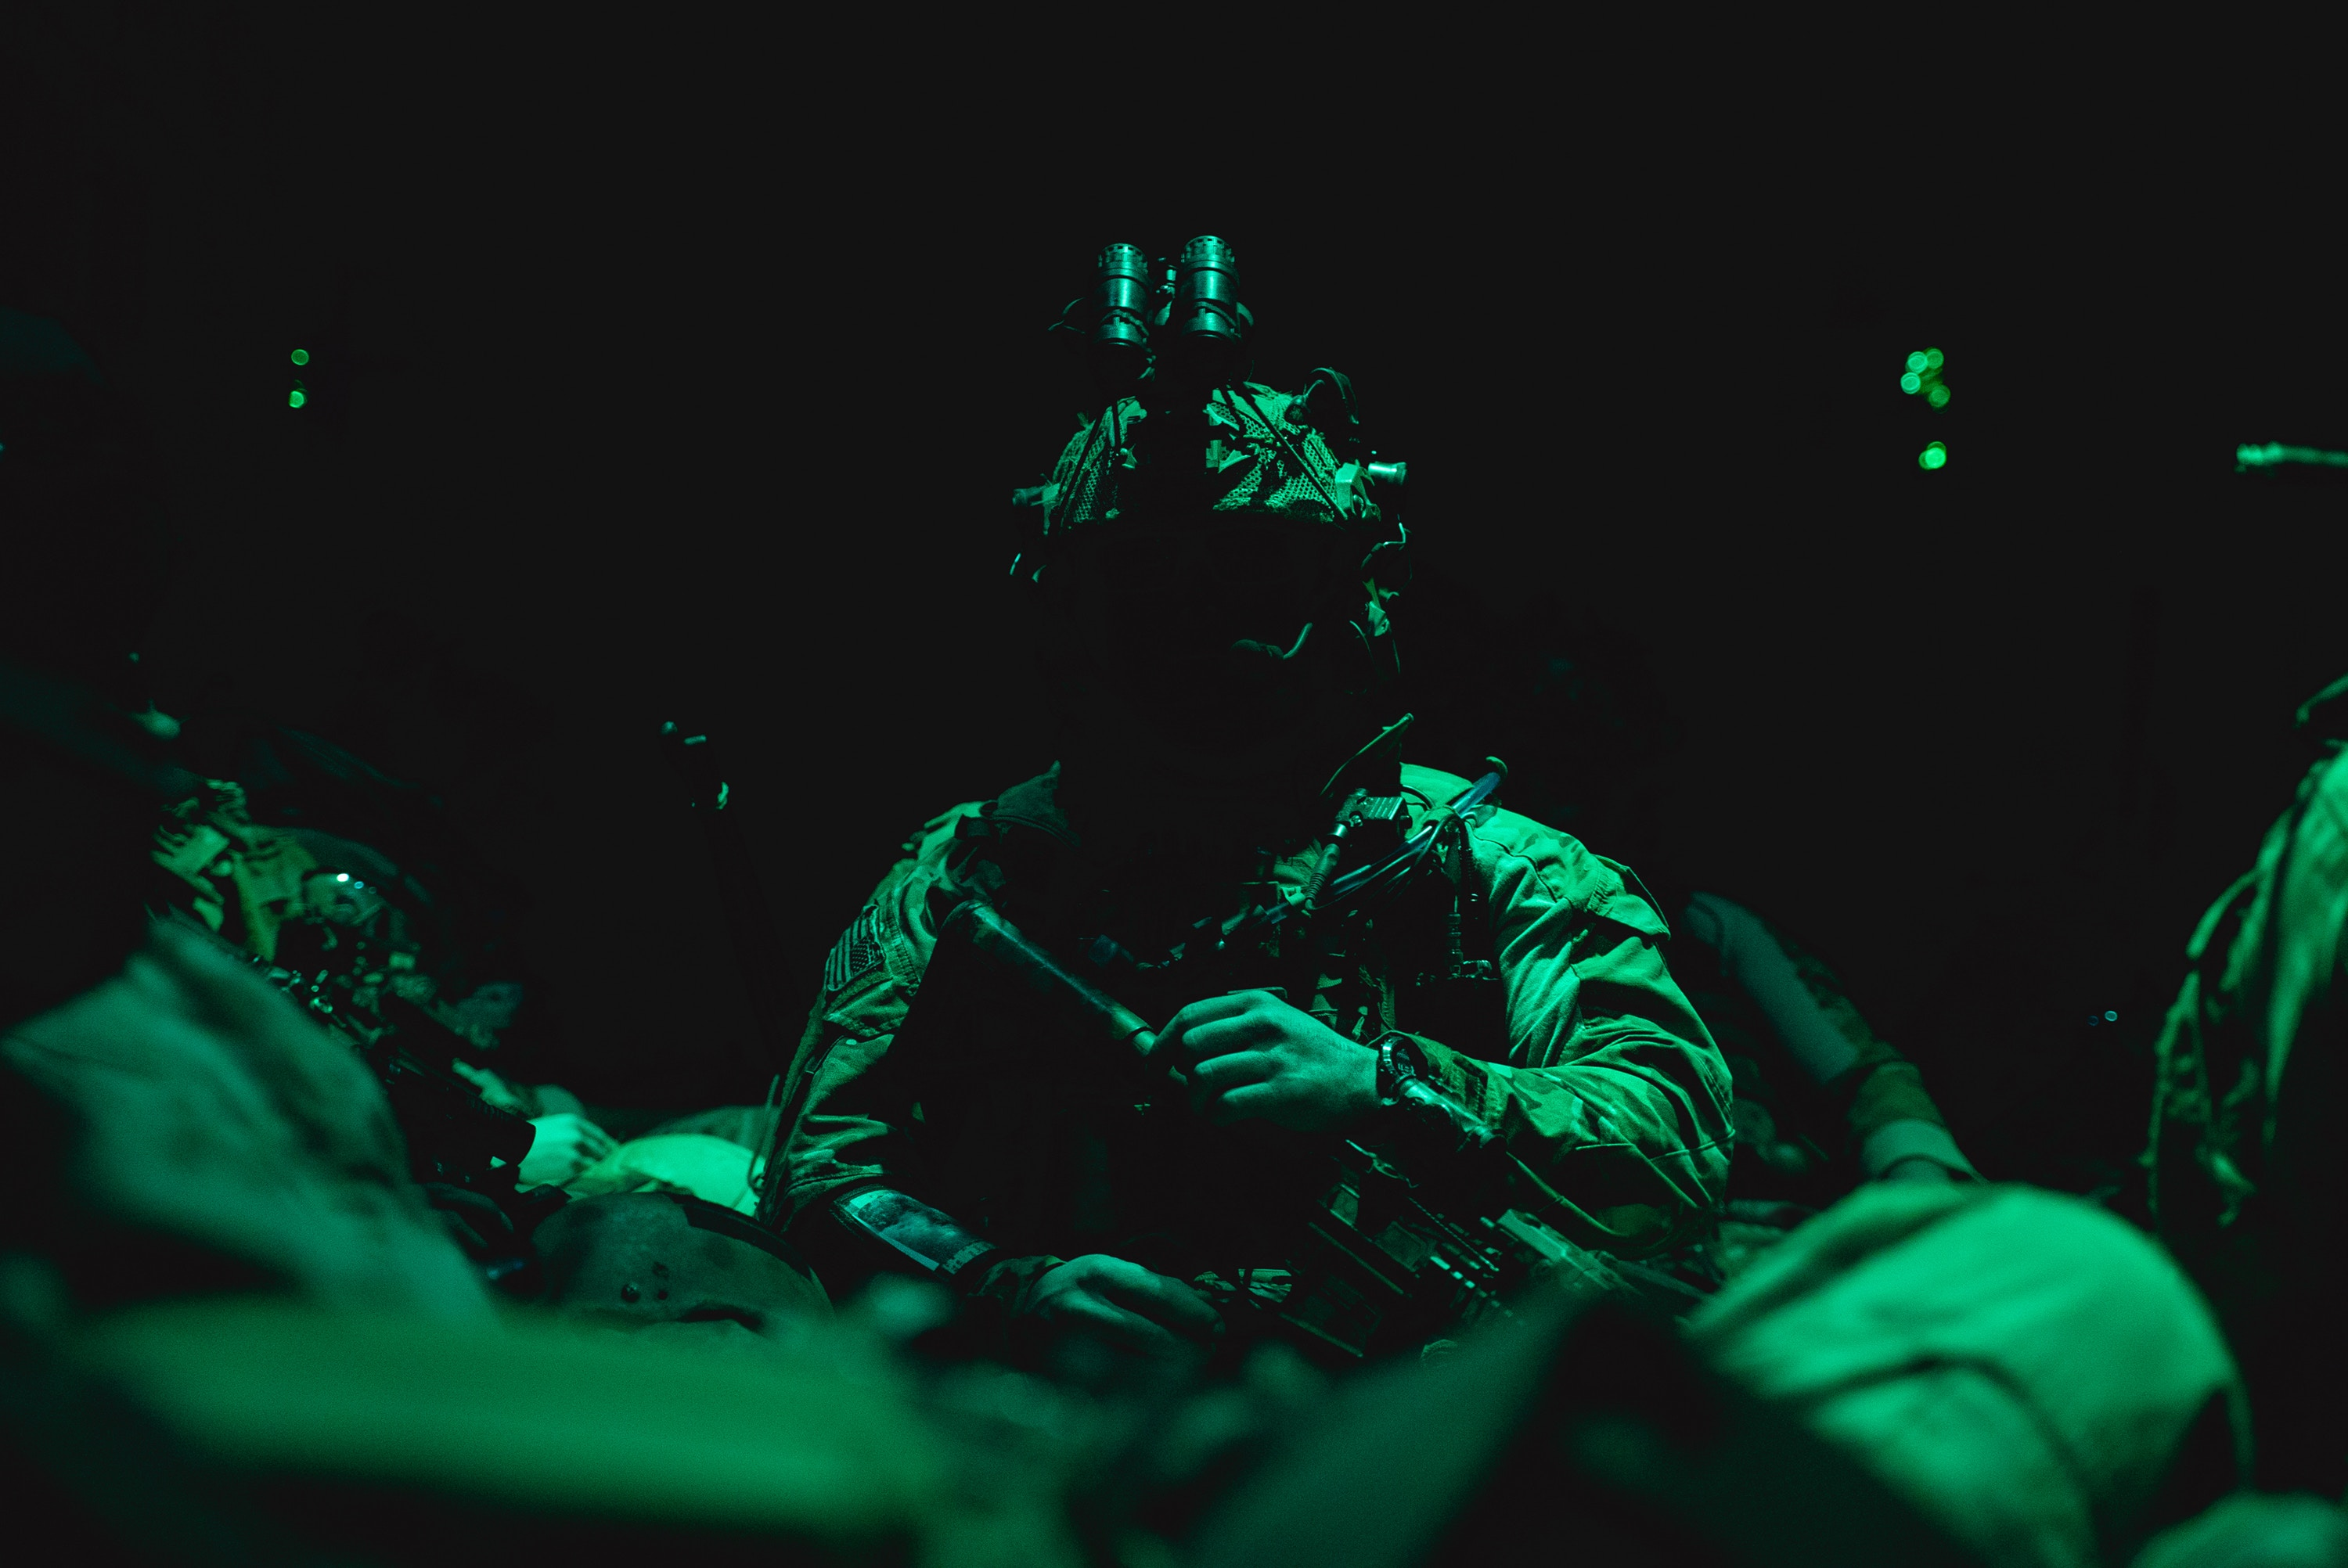 U.S. special operations service members conduct combat operations in support of Operation Resolute Support in Southeast Afghanistan, May 2019. RS is a NATO-led mission to train, advise, and assist the Afghan National Defense and Security Forces and institutions. (U.S. Army photo by Sgt. Jaerett Engeseth)